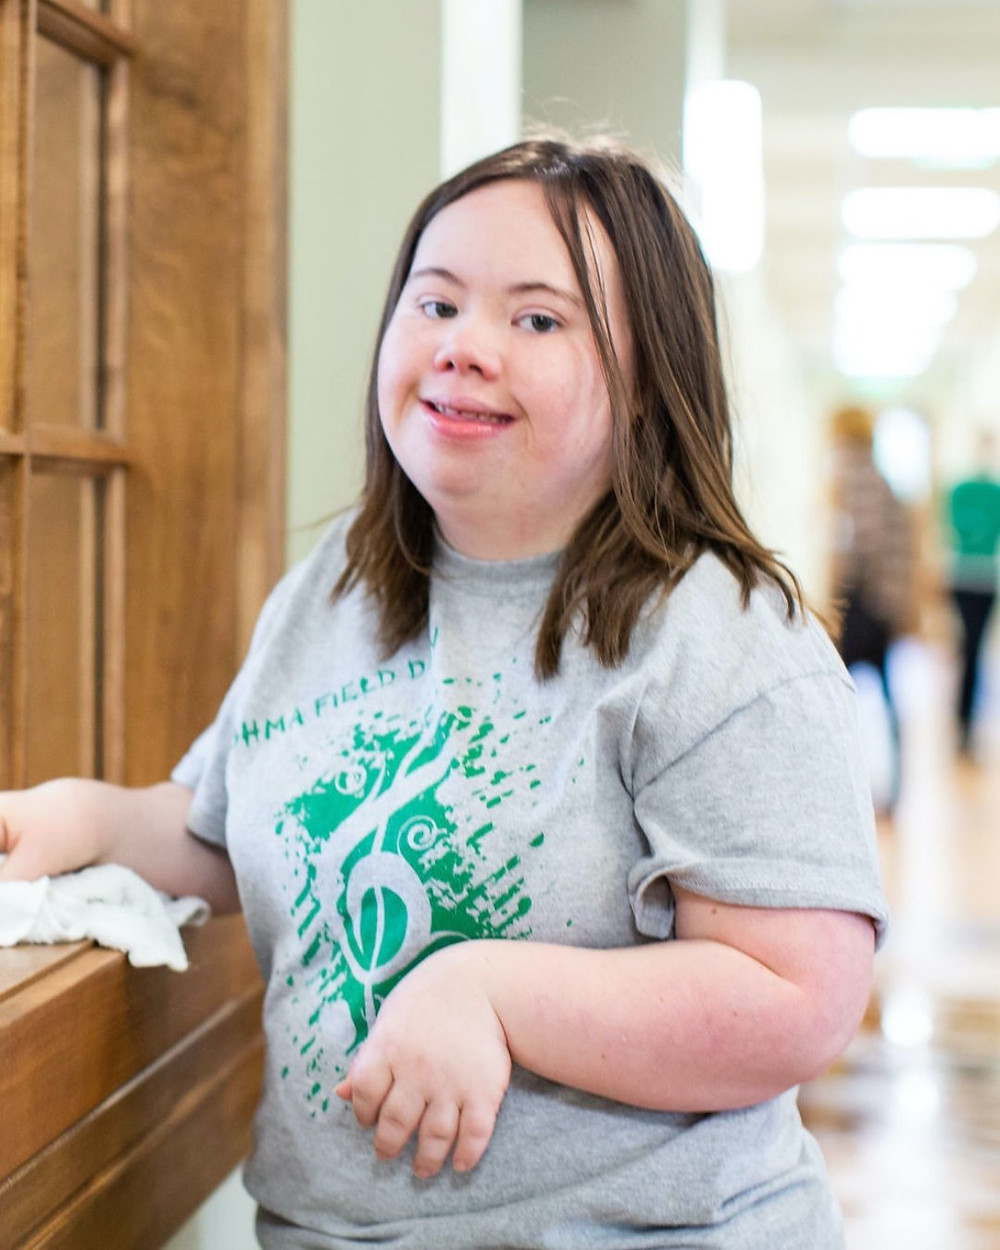 Photo of Jen Barrett, wearing a gray field day t-shirt, holding a white rag in her hands as she pauses while cleaning in the Bernon Music Center.